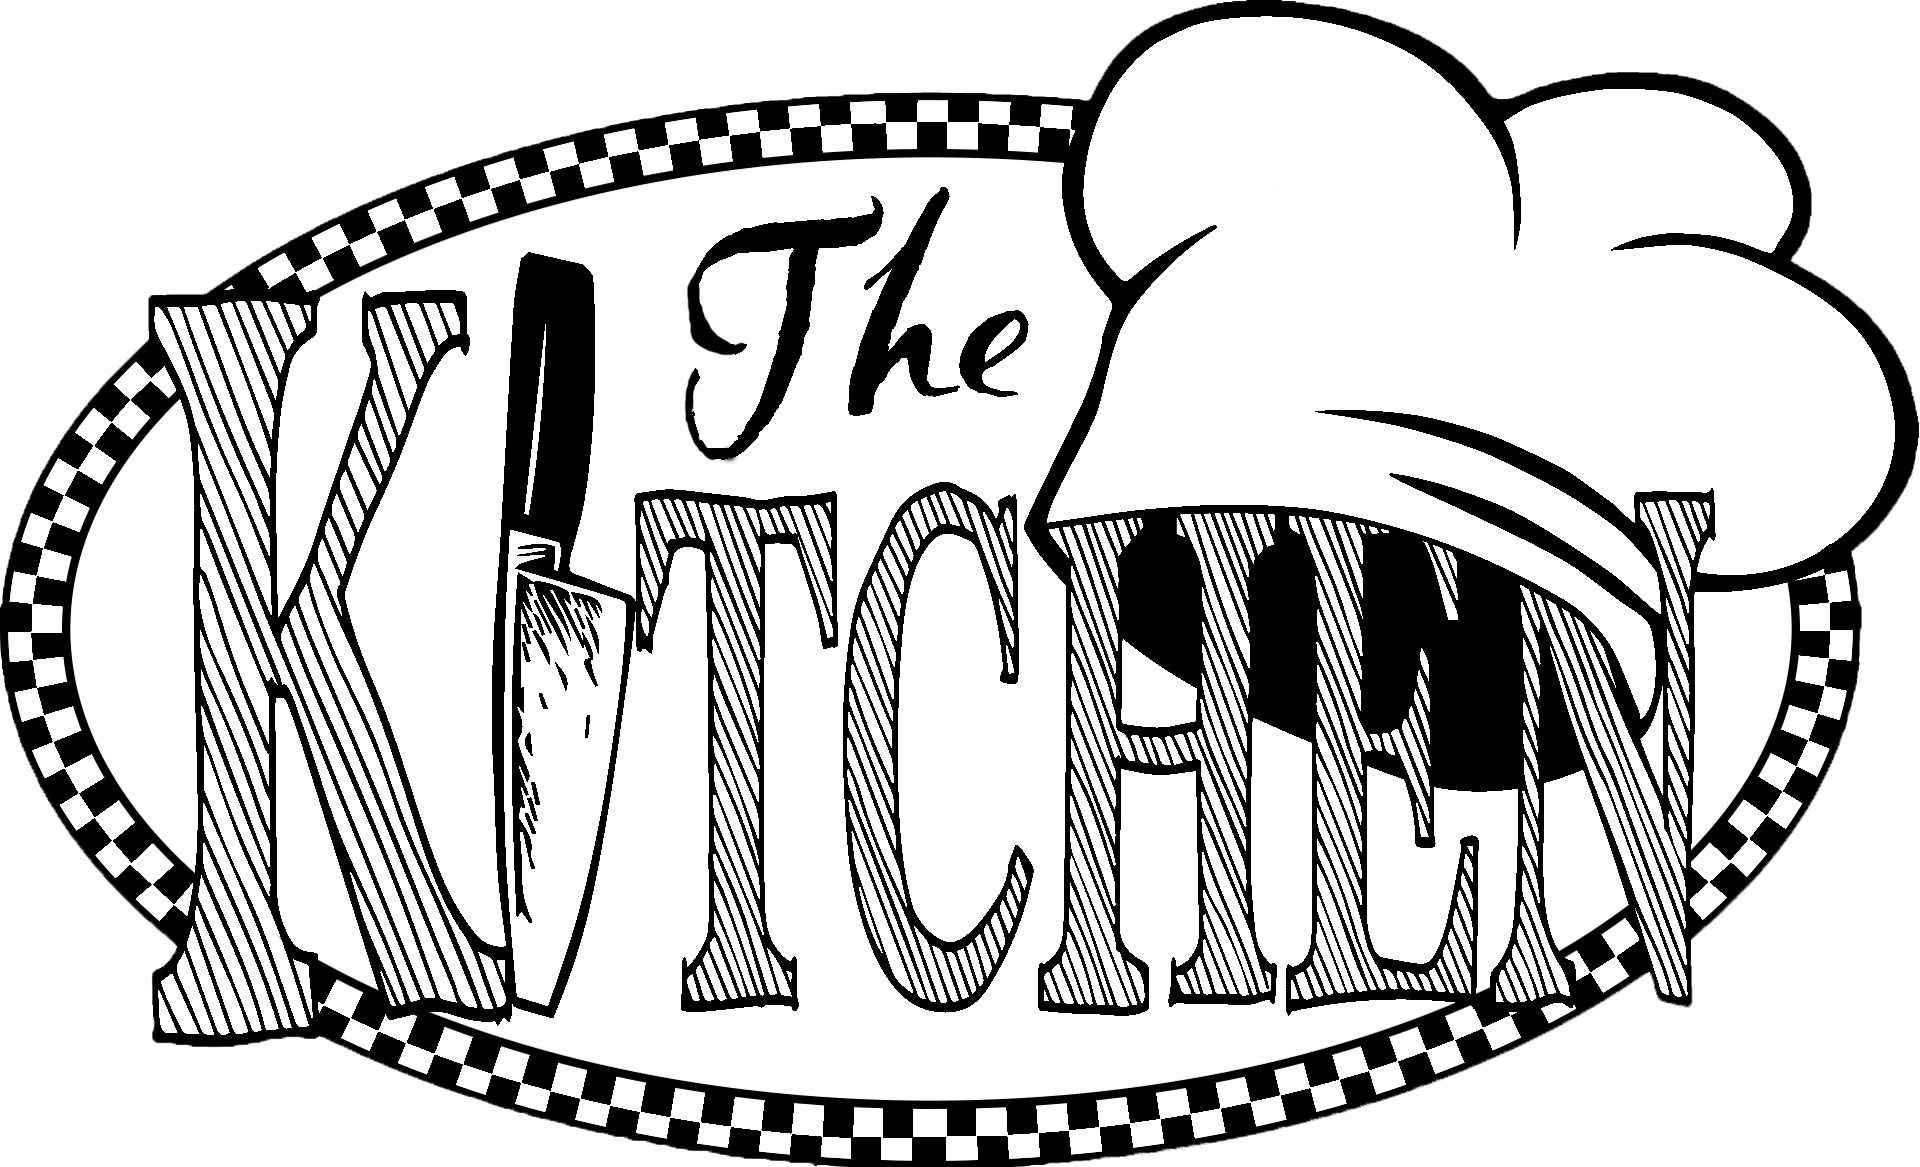 Clipart kitchen family kitchen. The